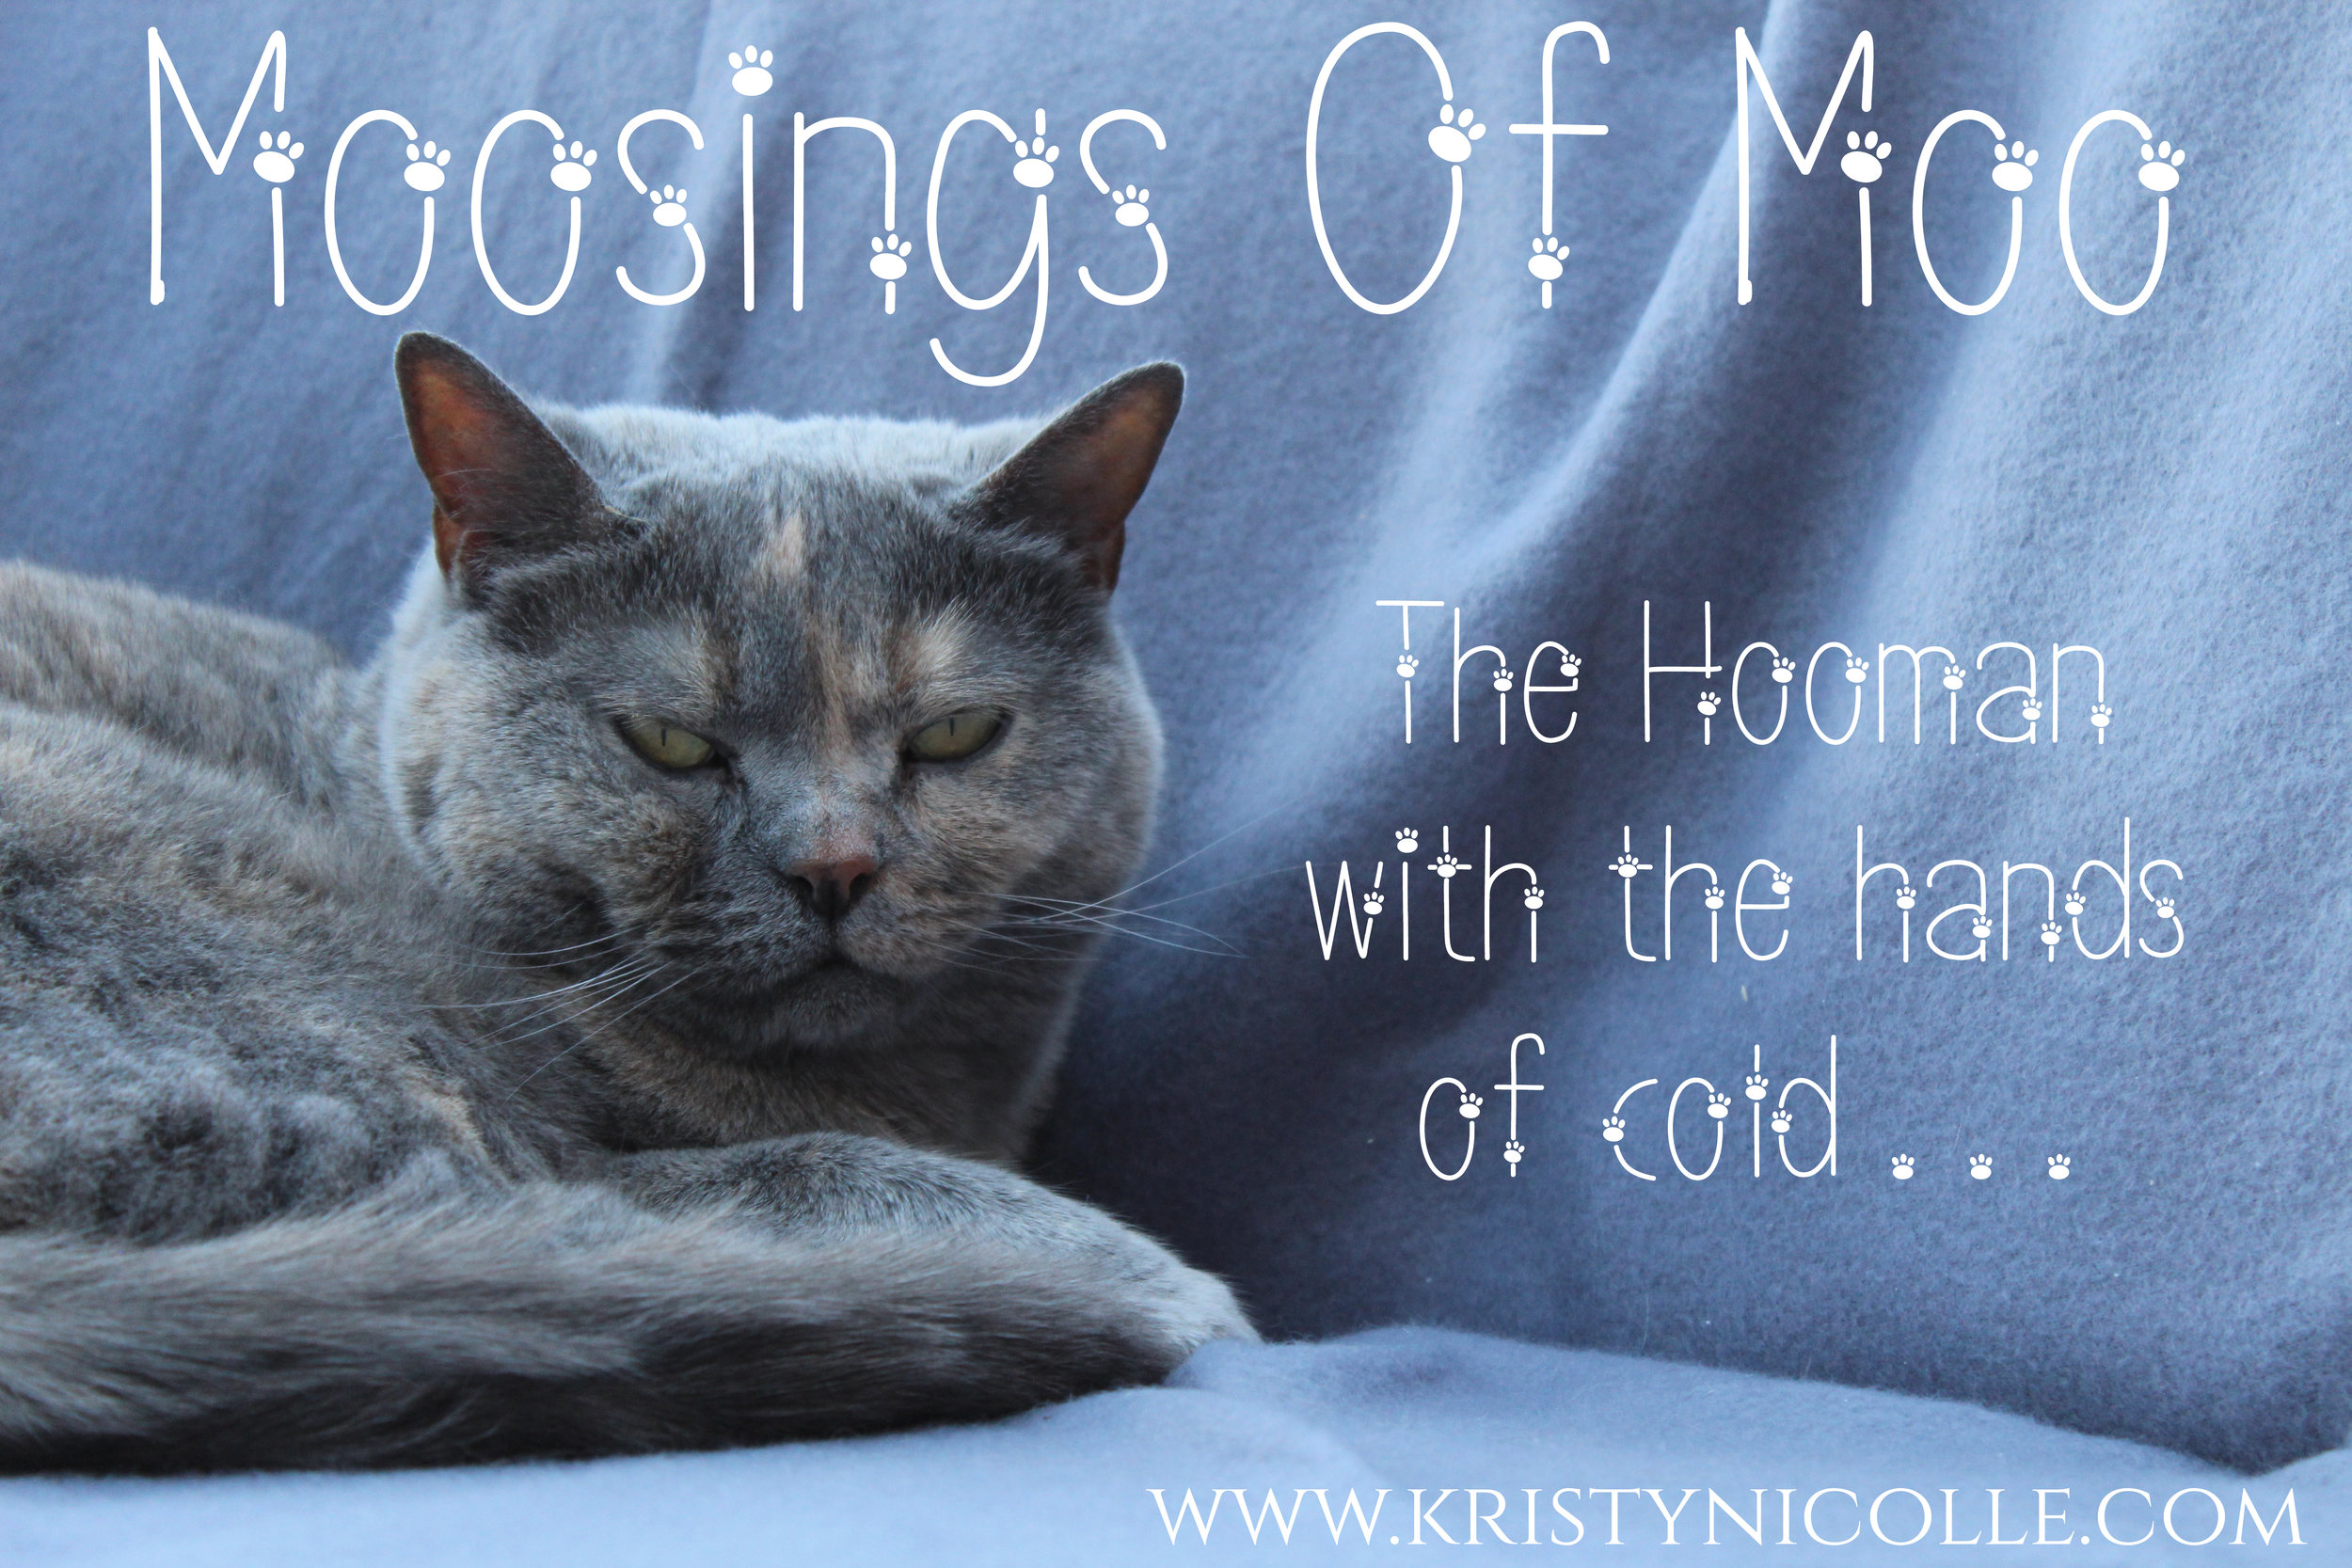 Moosings of Moo- The Hooman with the hands of cold